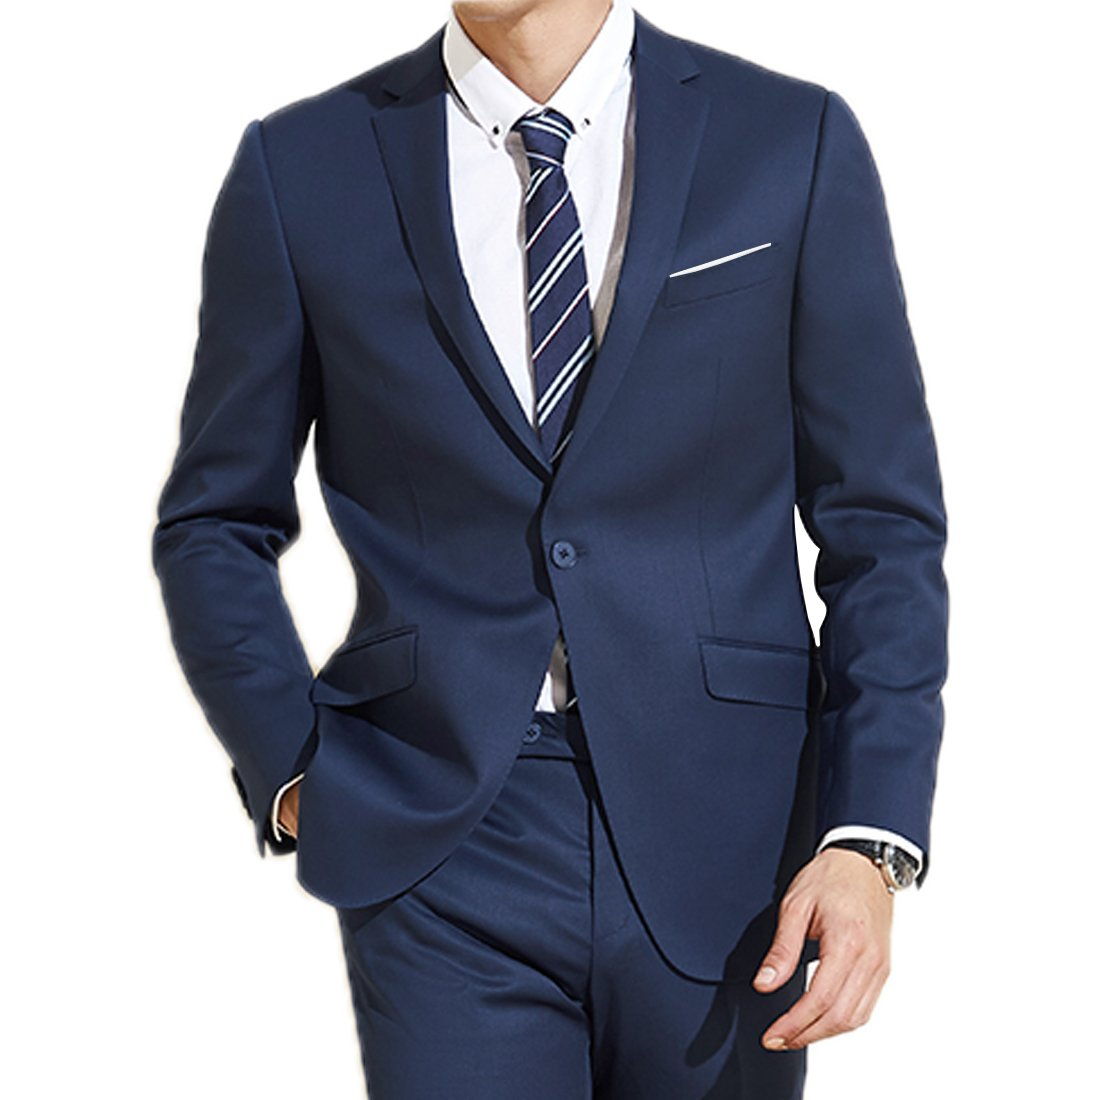 Jearey Mens Blazer Casual Slim Fit Lapel Suit Jacket One Button Daily Business Dress Coat (Navy, XX-Large) by Jearey (Image #1)